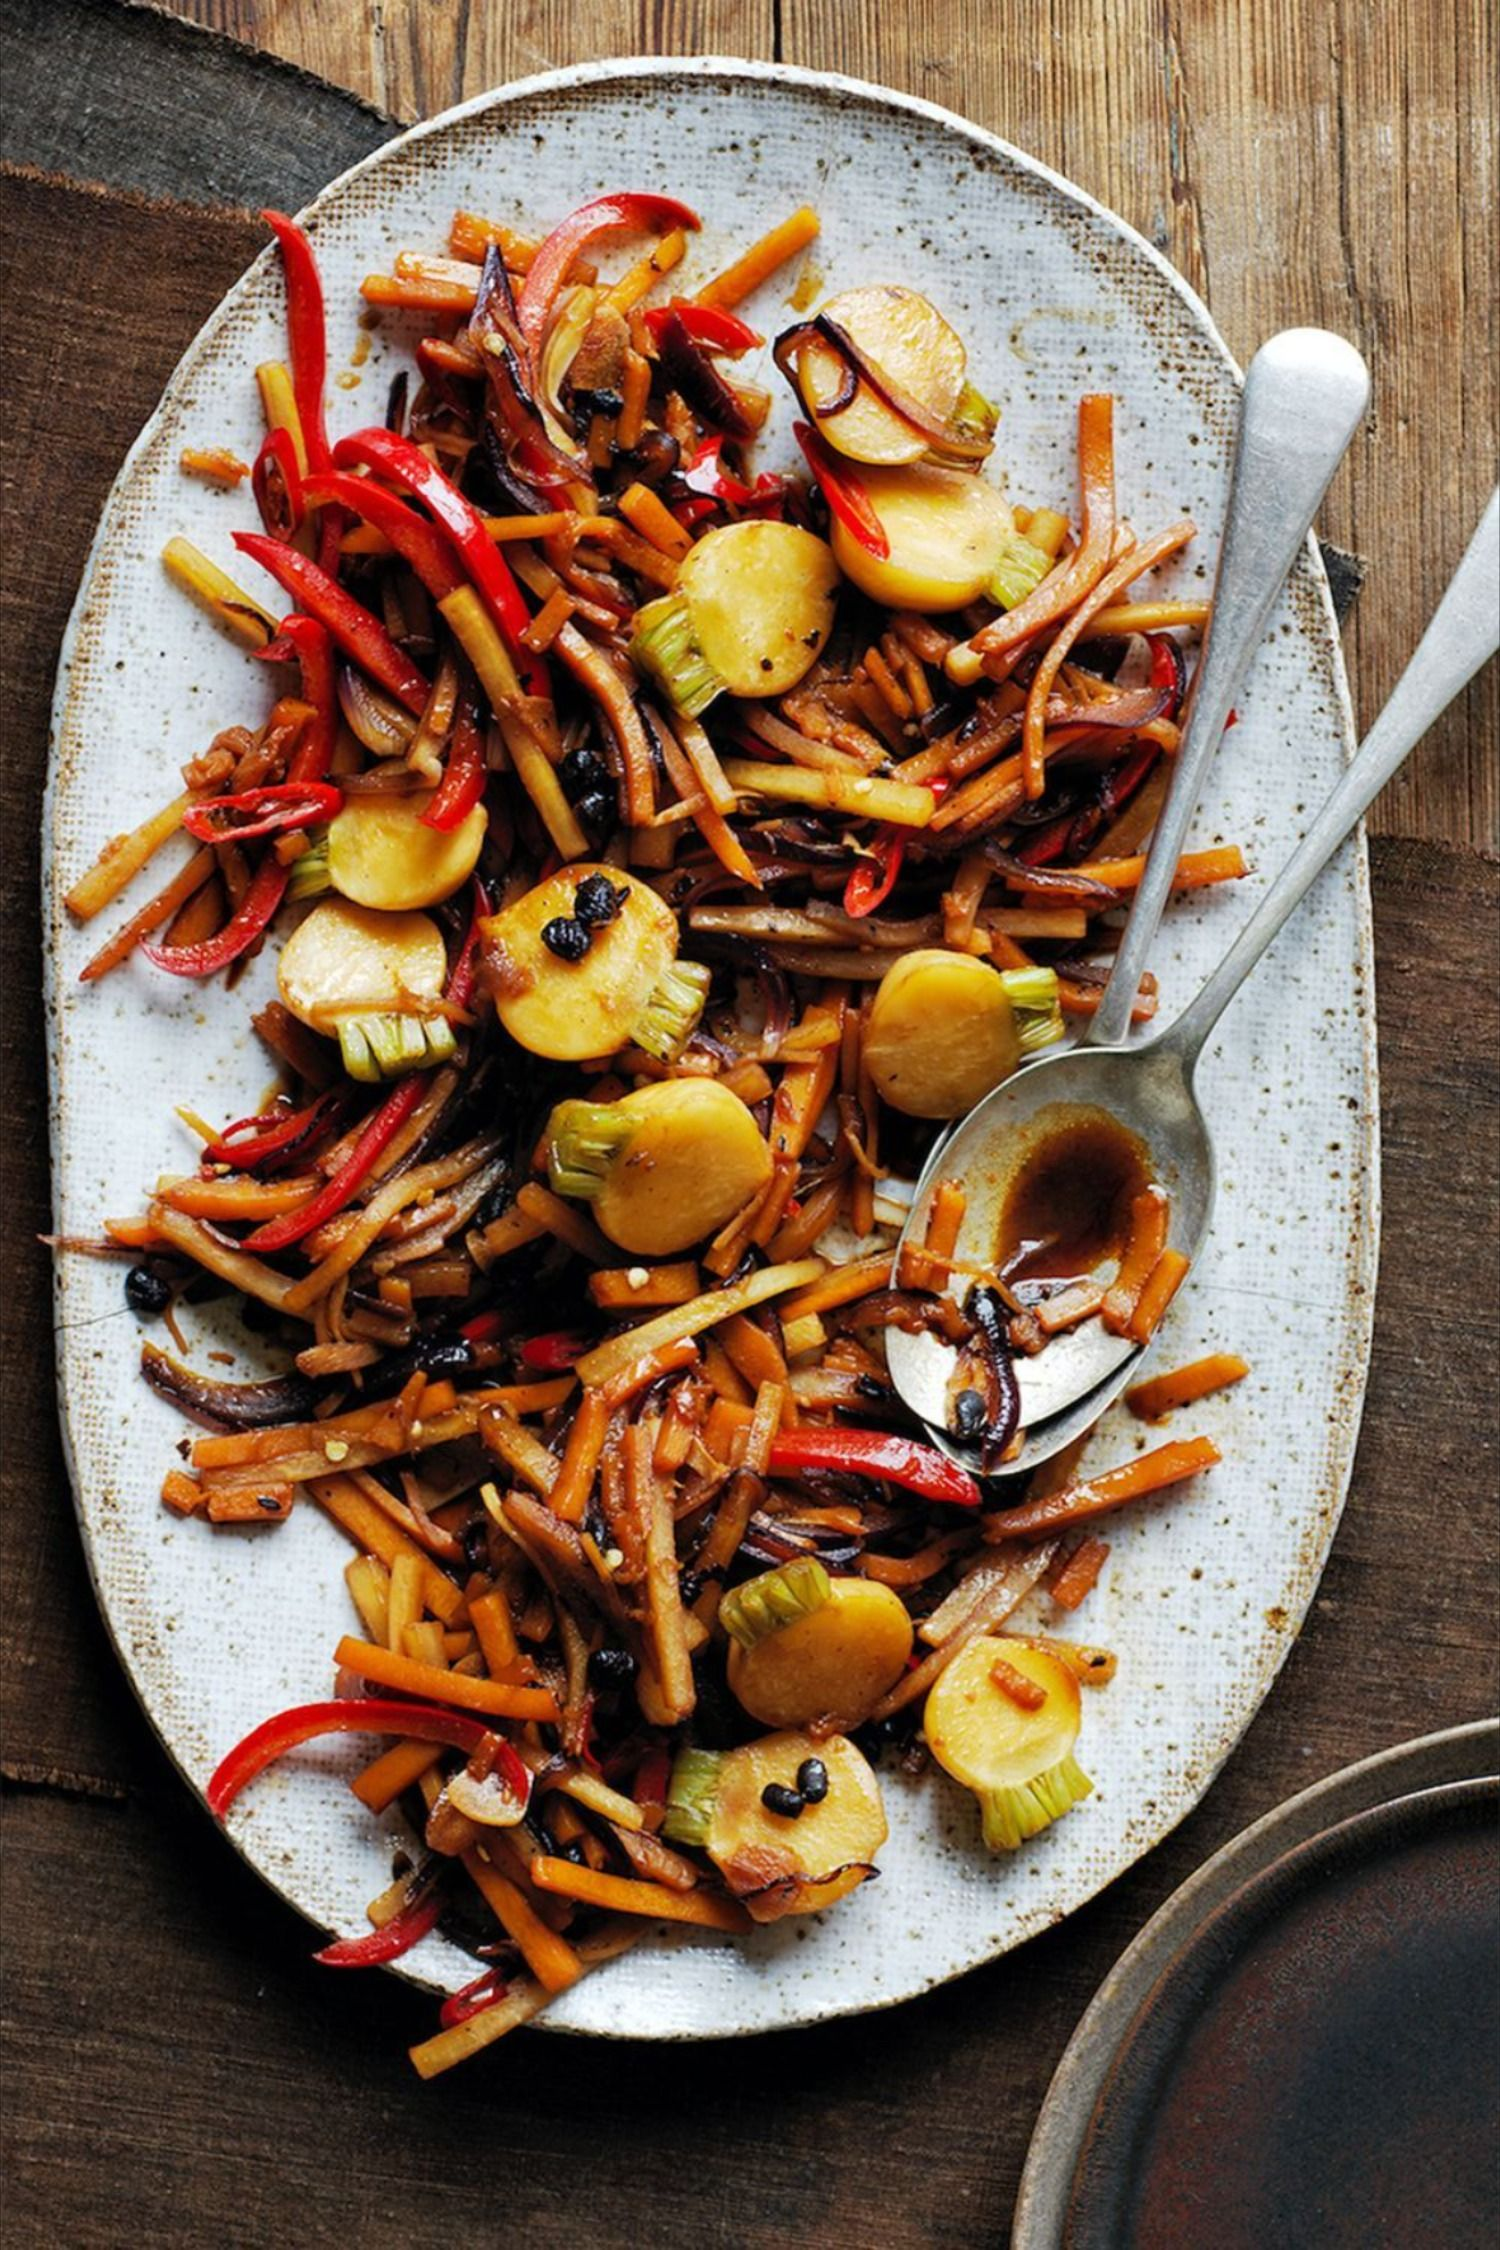 Speedy Stir Fries To Get You Through The Midweek Madness In 2021 Lunch Recipes Healthy Easy Dinner Recipes Healthy Snacks Recipes